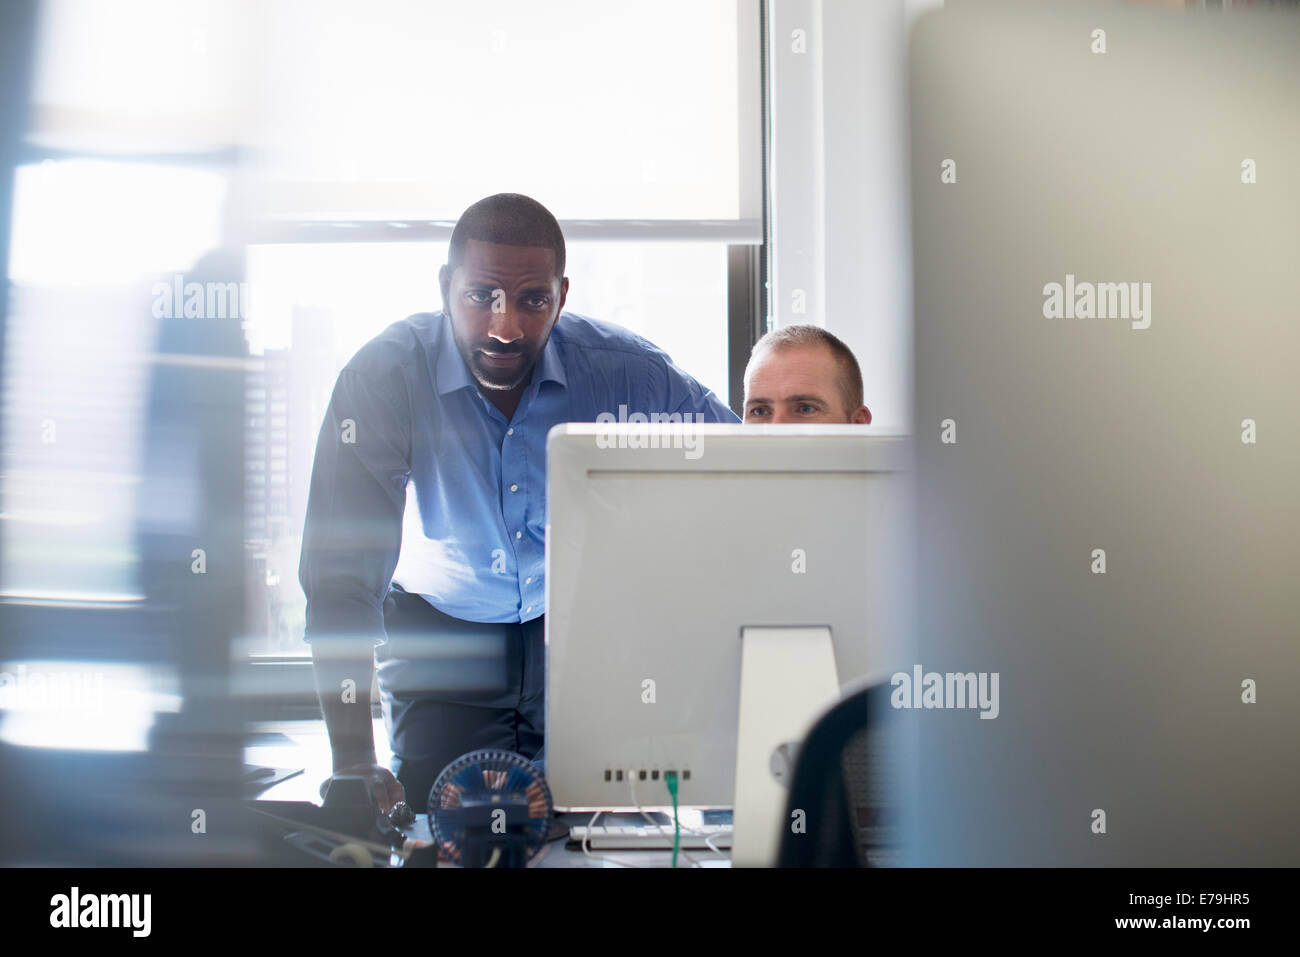 Two men working in an office, both looking at a computer monitor. - Stock Image